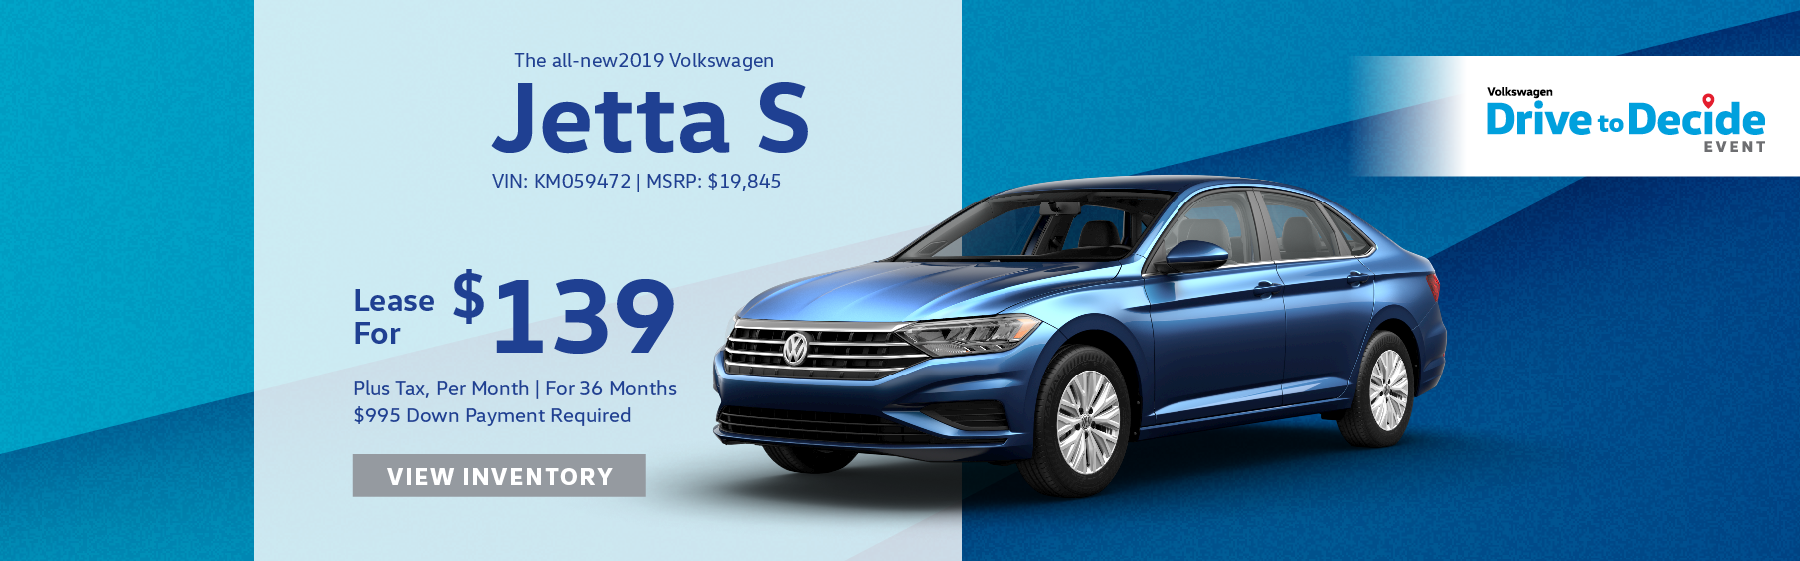 Lease the all-new 2019 Volkswagen Jetta S for $139 plus tax for 36 months. $995 Down payment required.